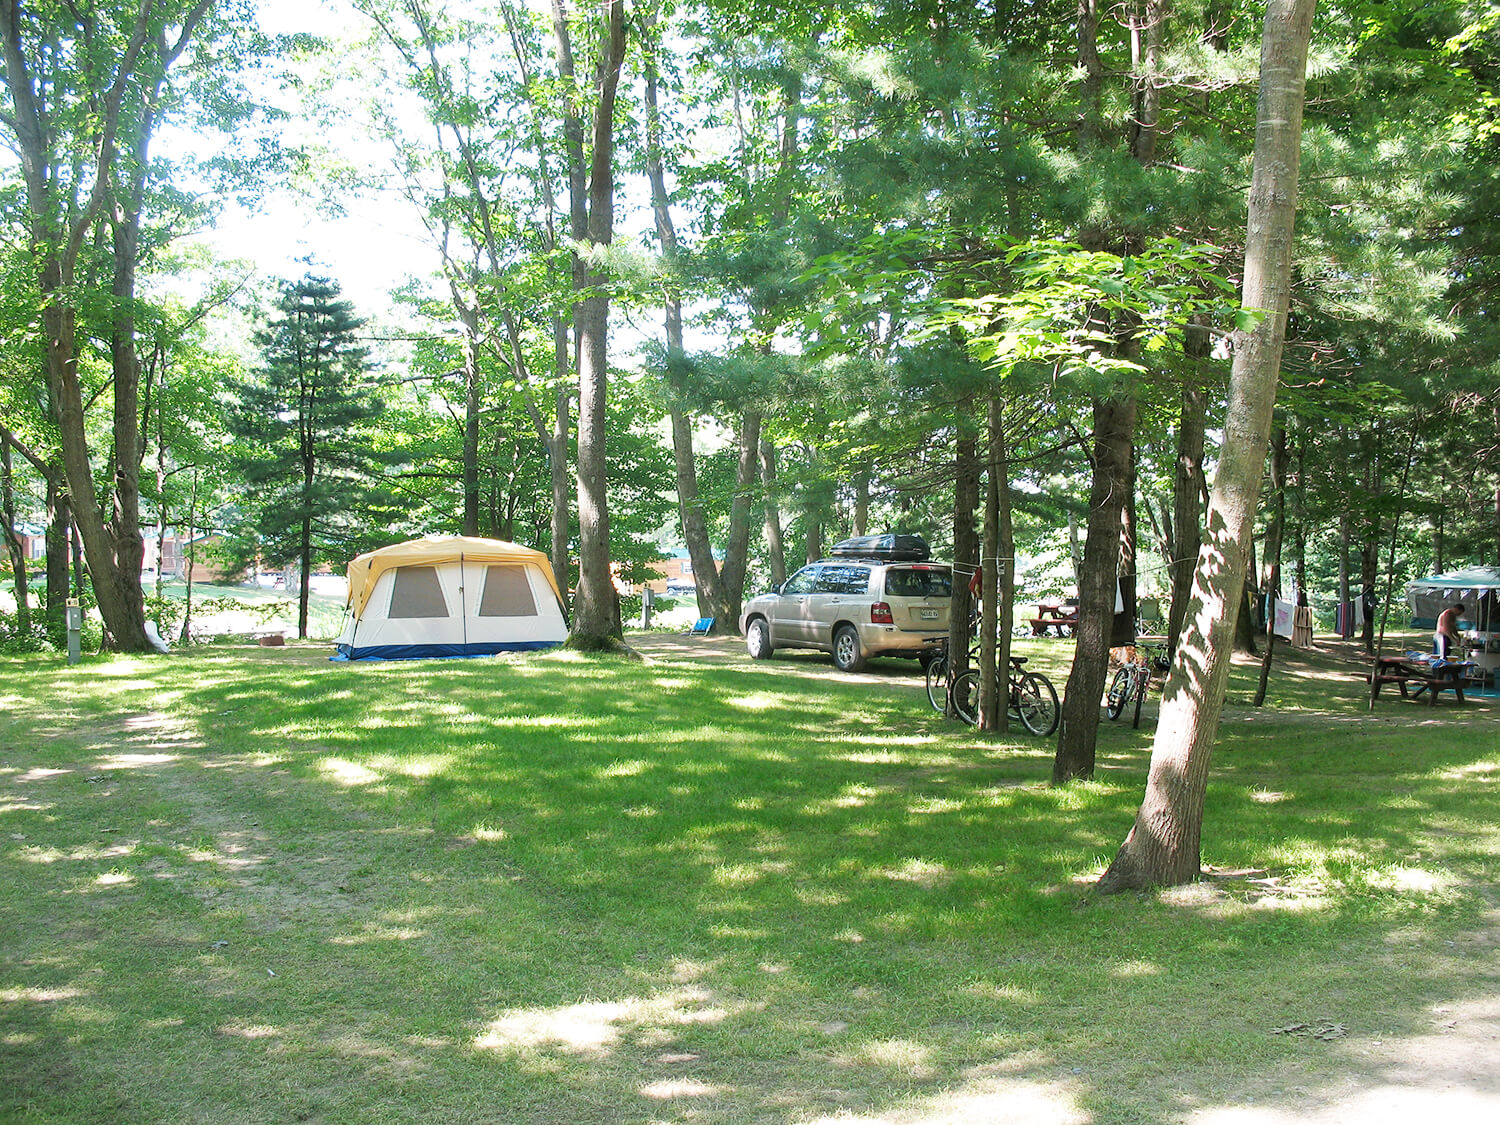 Camping Sites | Bayley's Camping Resort